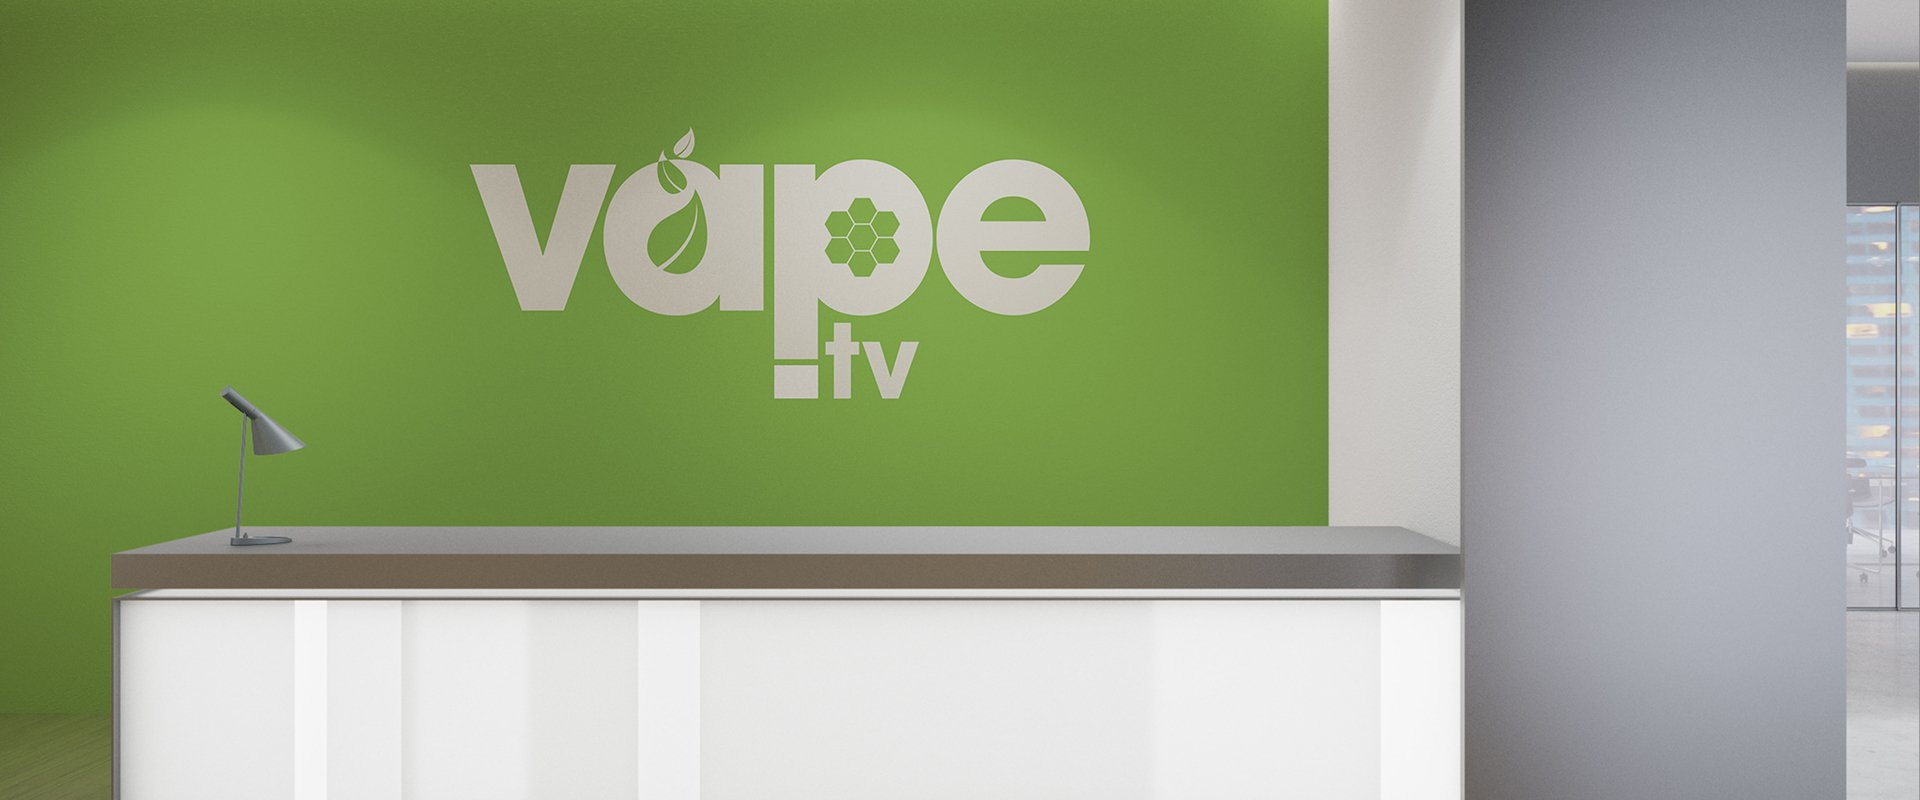 Branded office wall with green background taken from original logo colours.